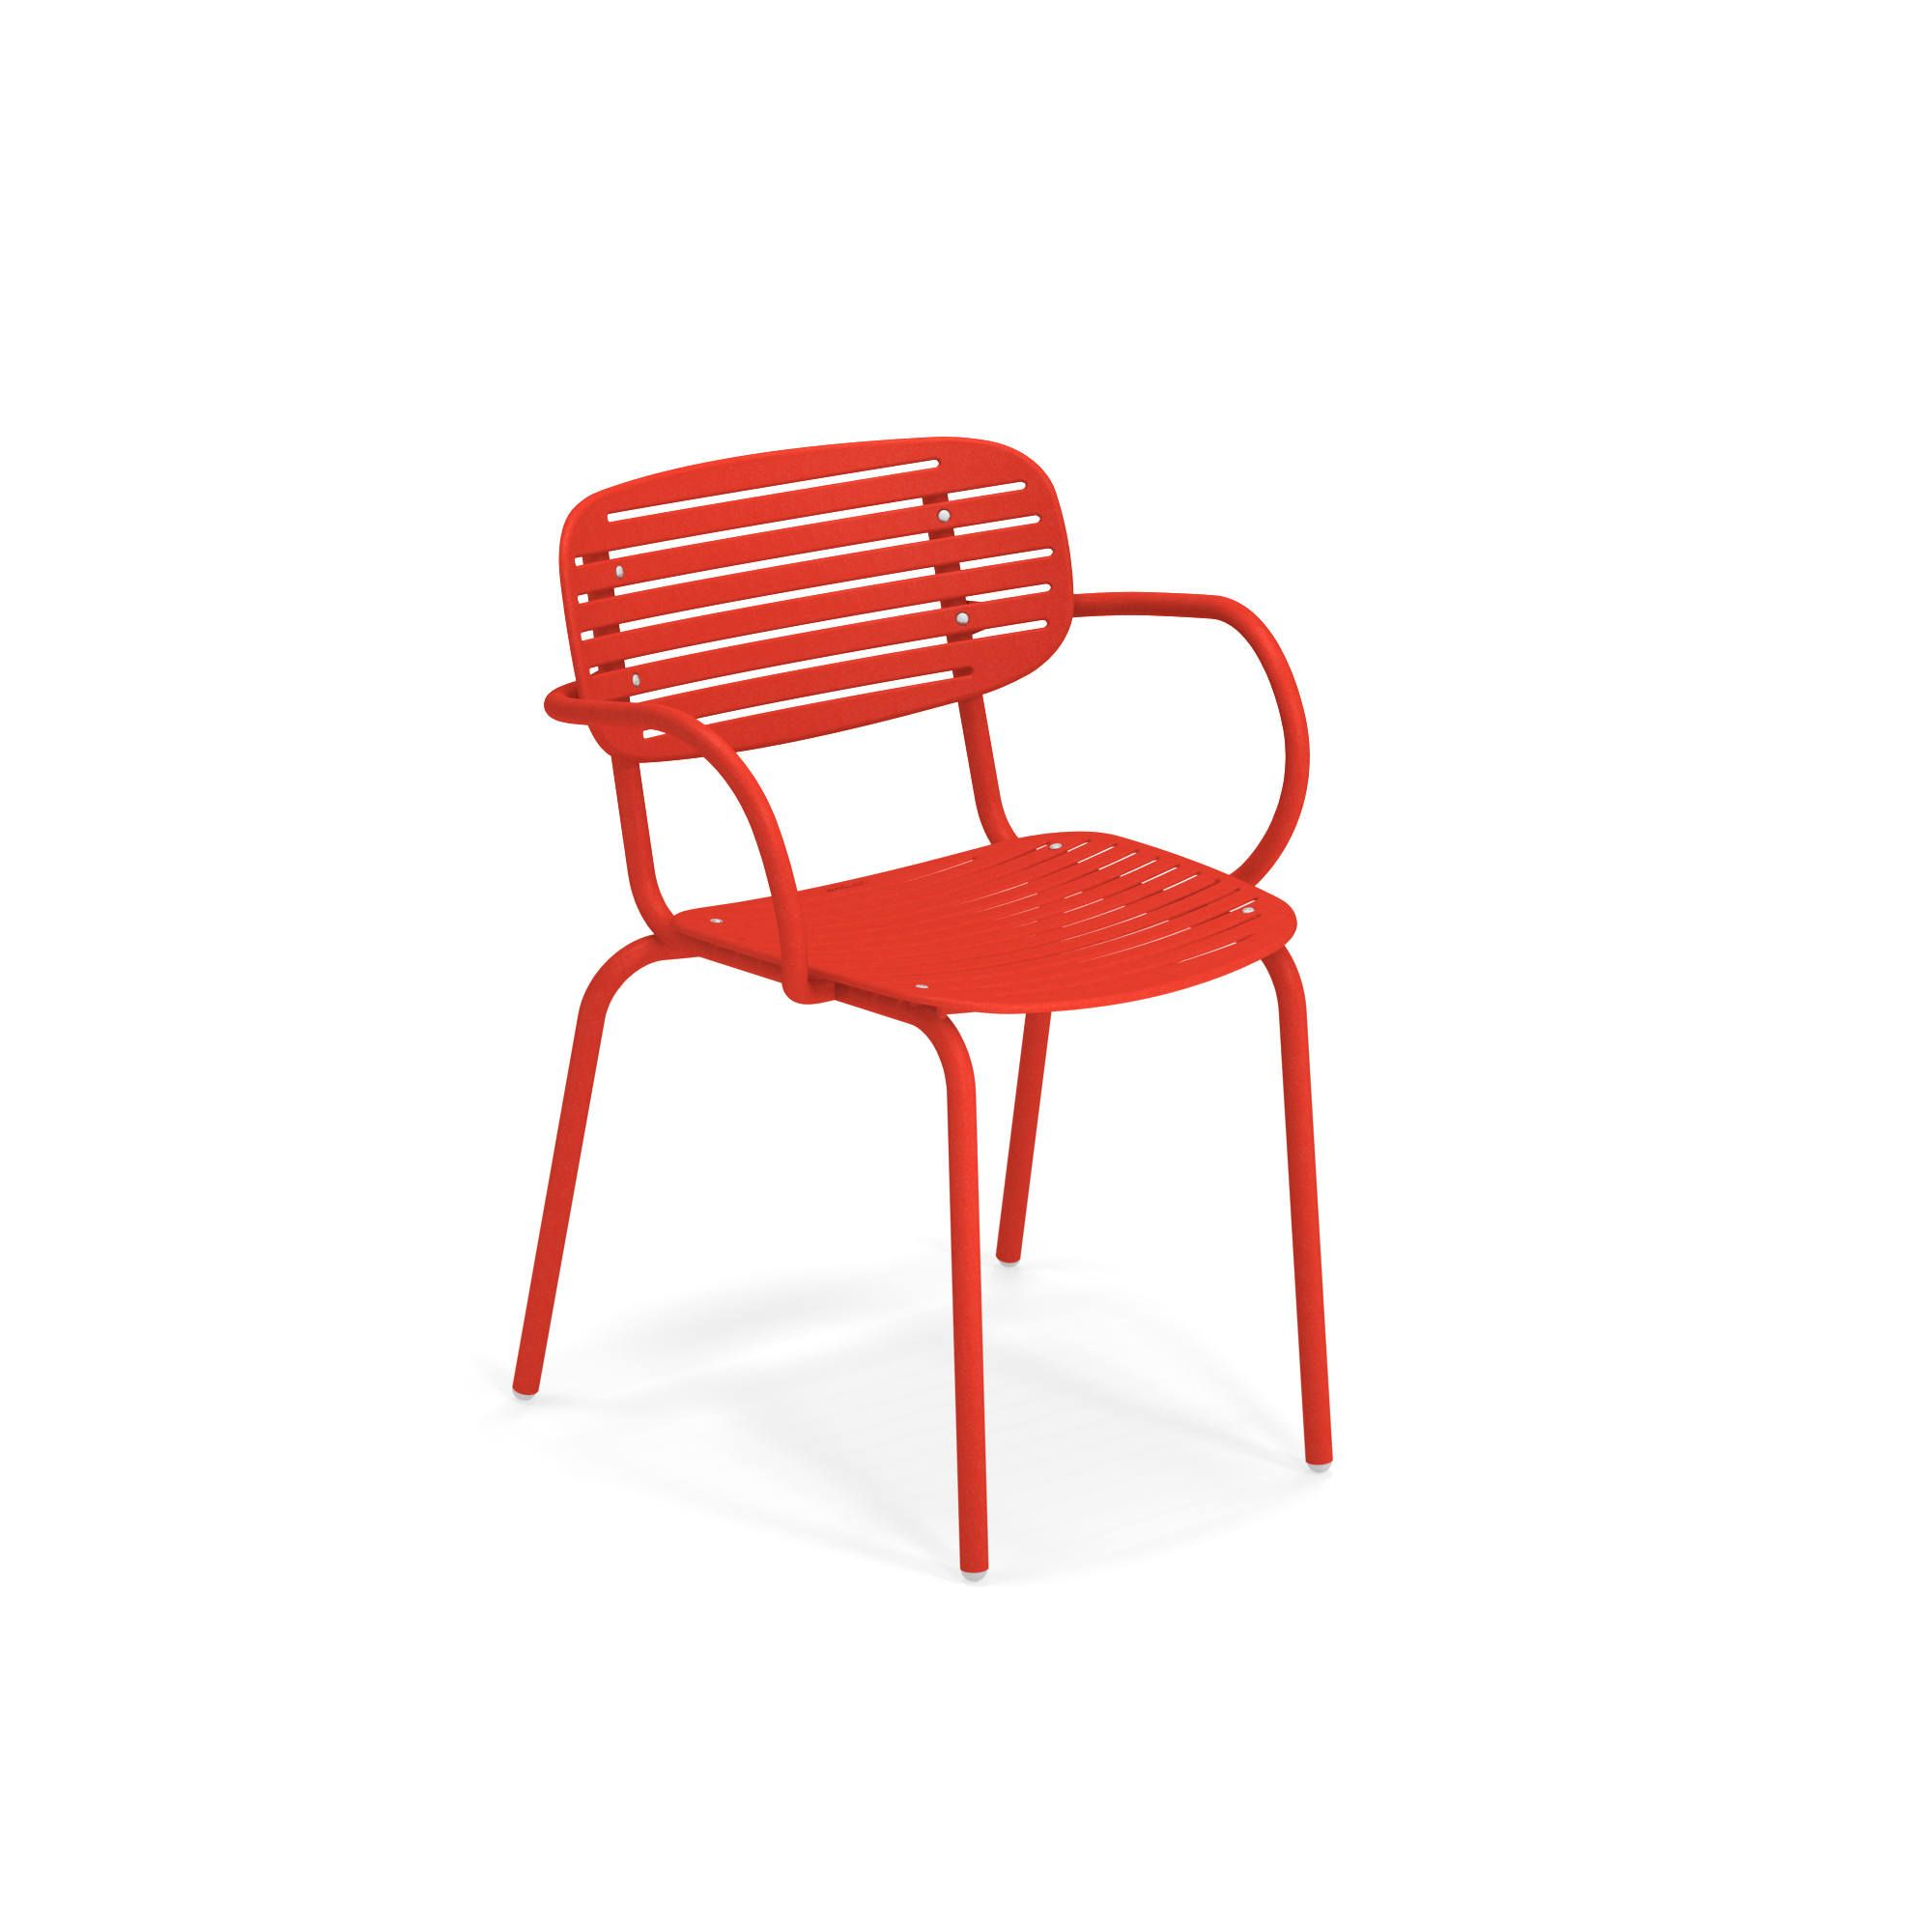 emuamericas, llc 640-50 chair, armchair, stacking, outdoor